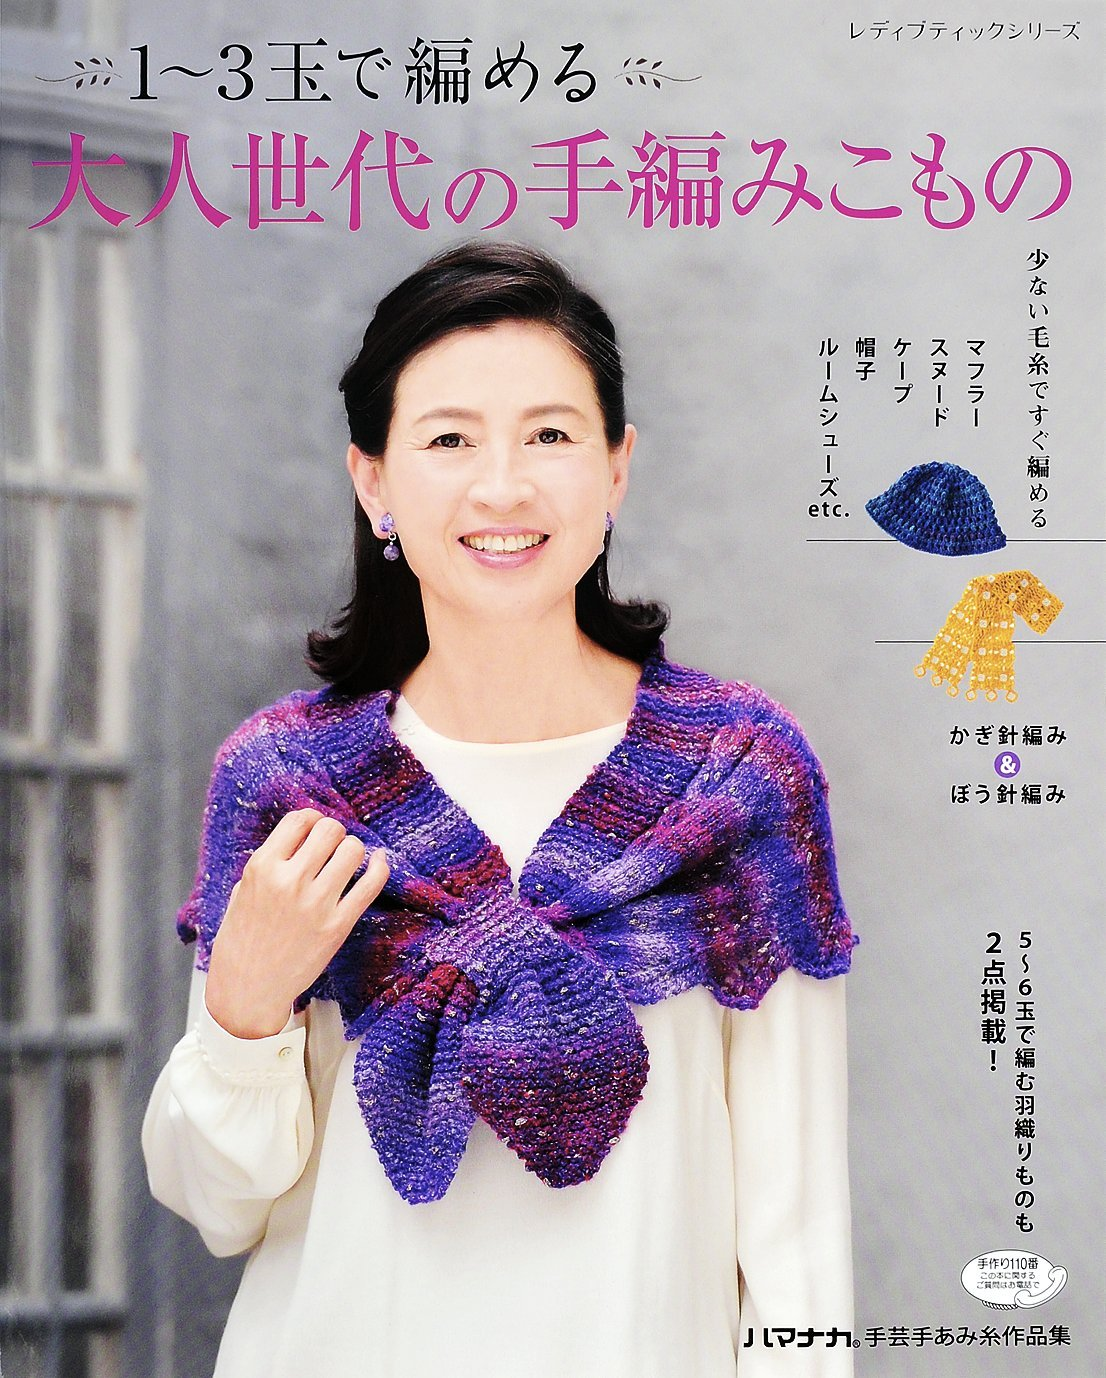 Adult generation hand-knitted accessories